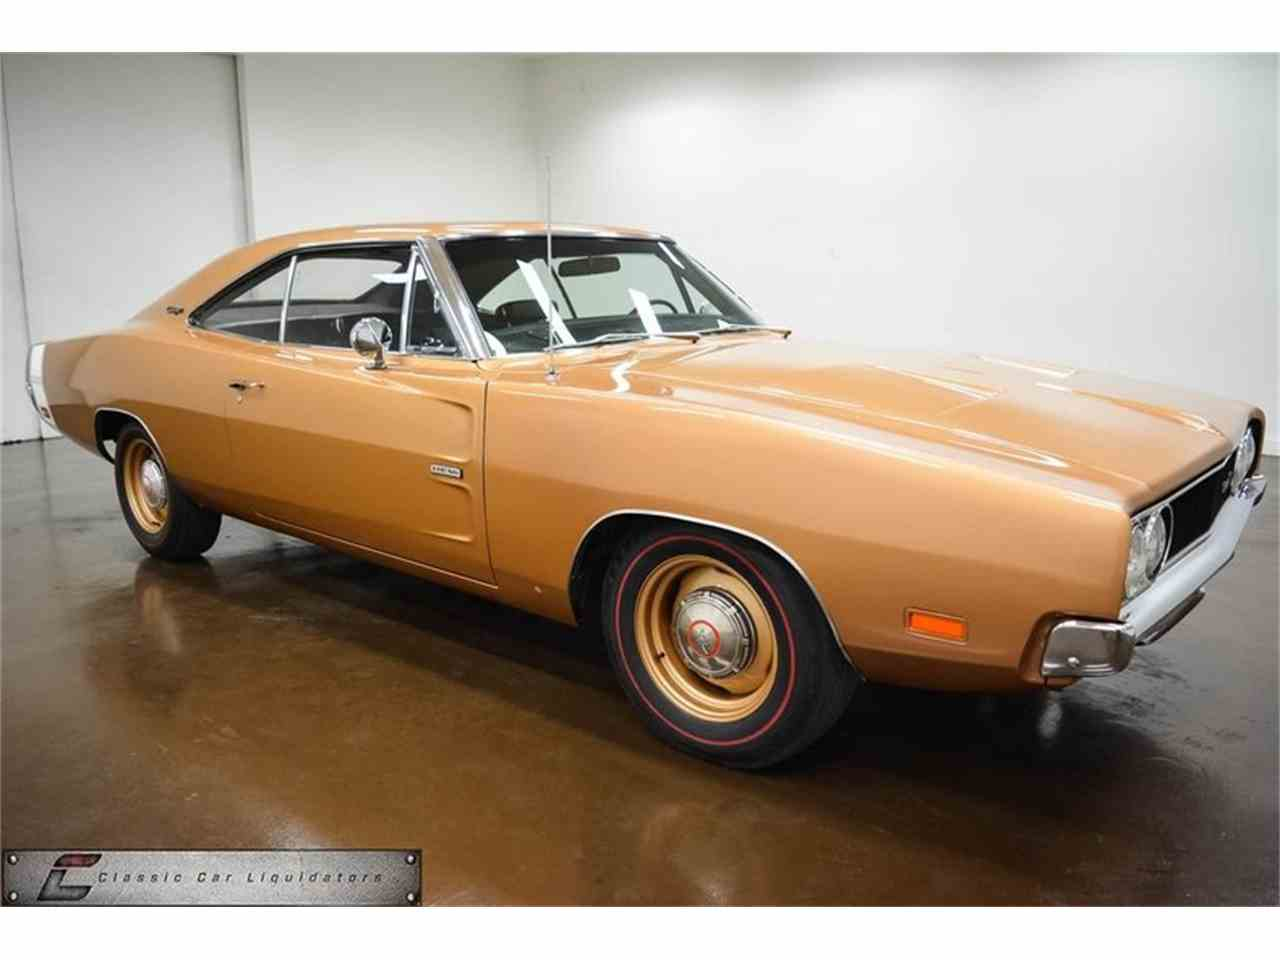 Dodge Charger For Sale ClassicCarscom CC - 1969 classic cars